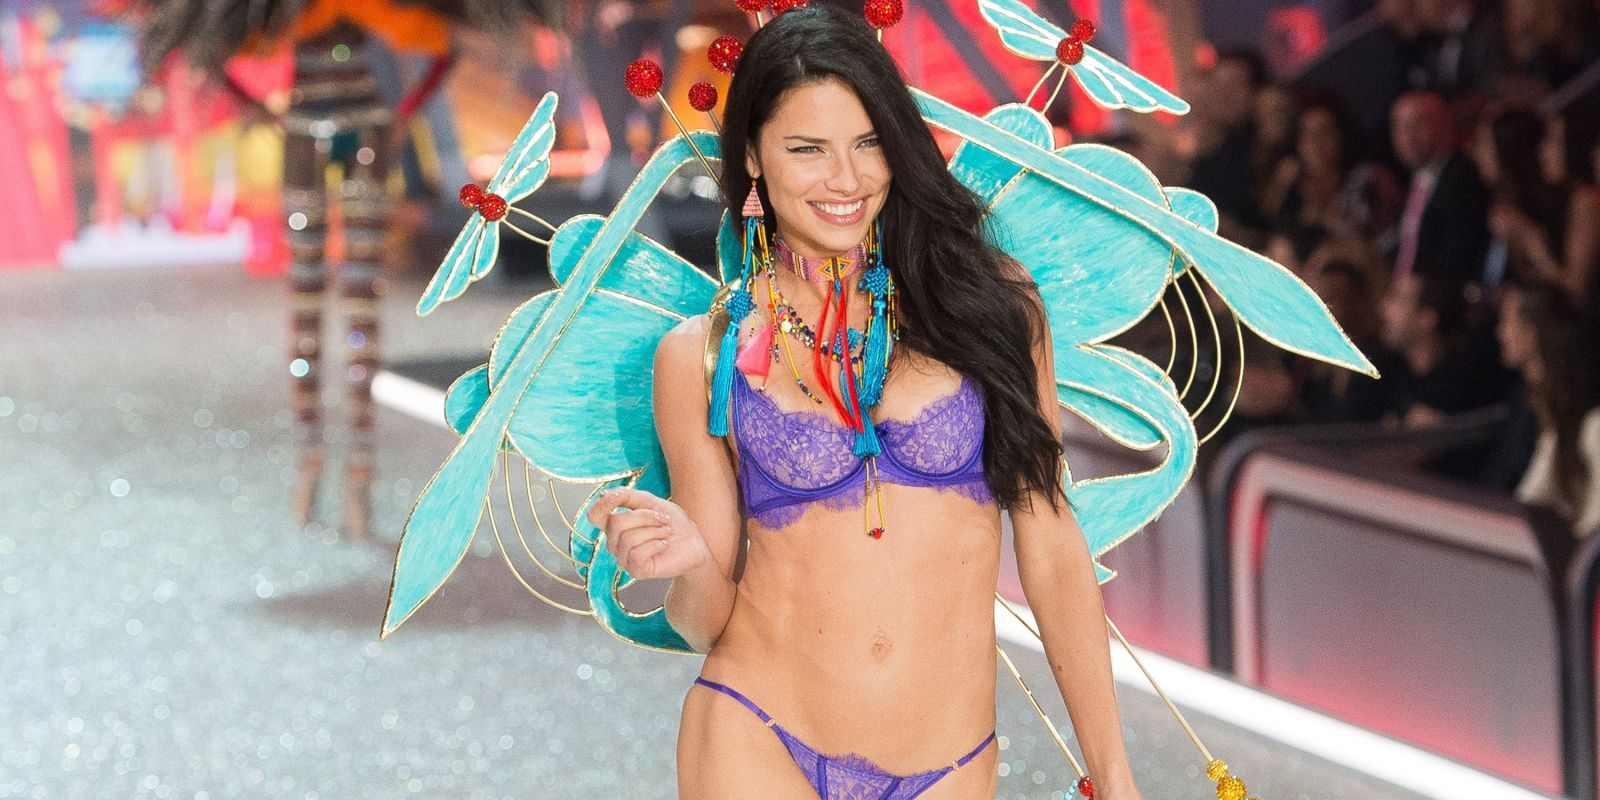 Victoria's Secret Angel Adriana Lima Just Revealed Her Diet and Workout Routine